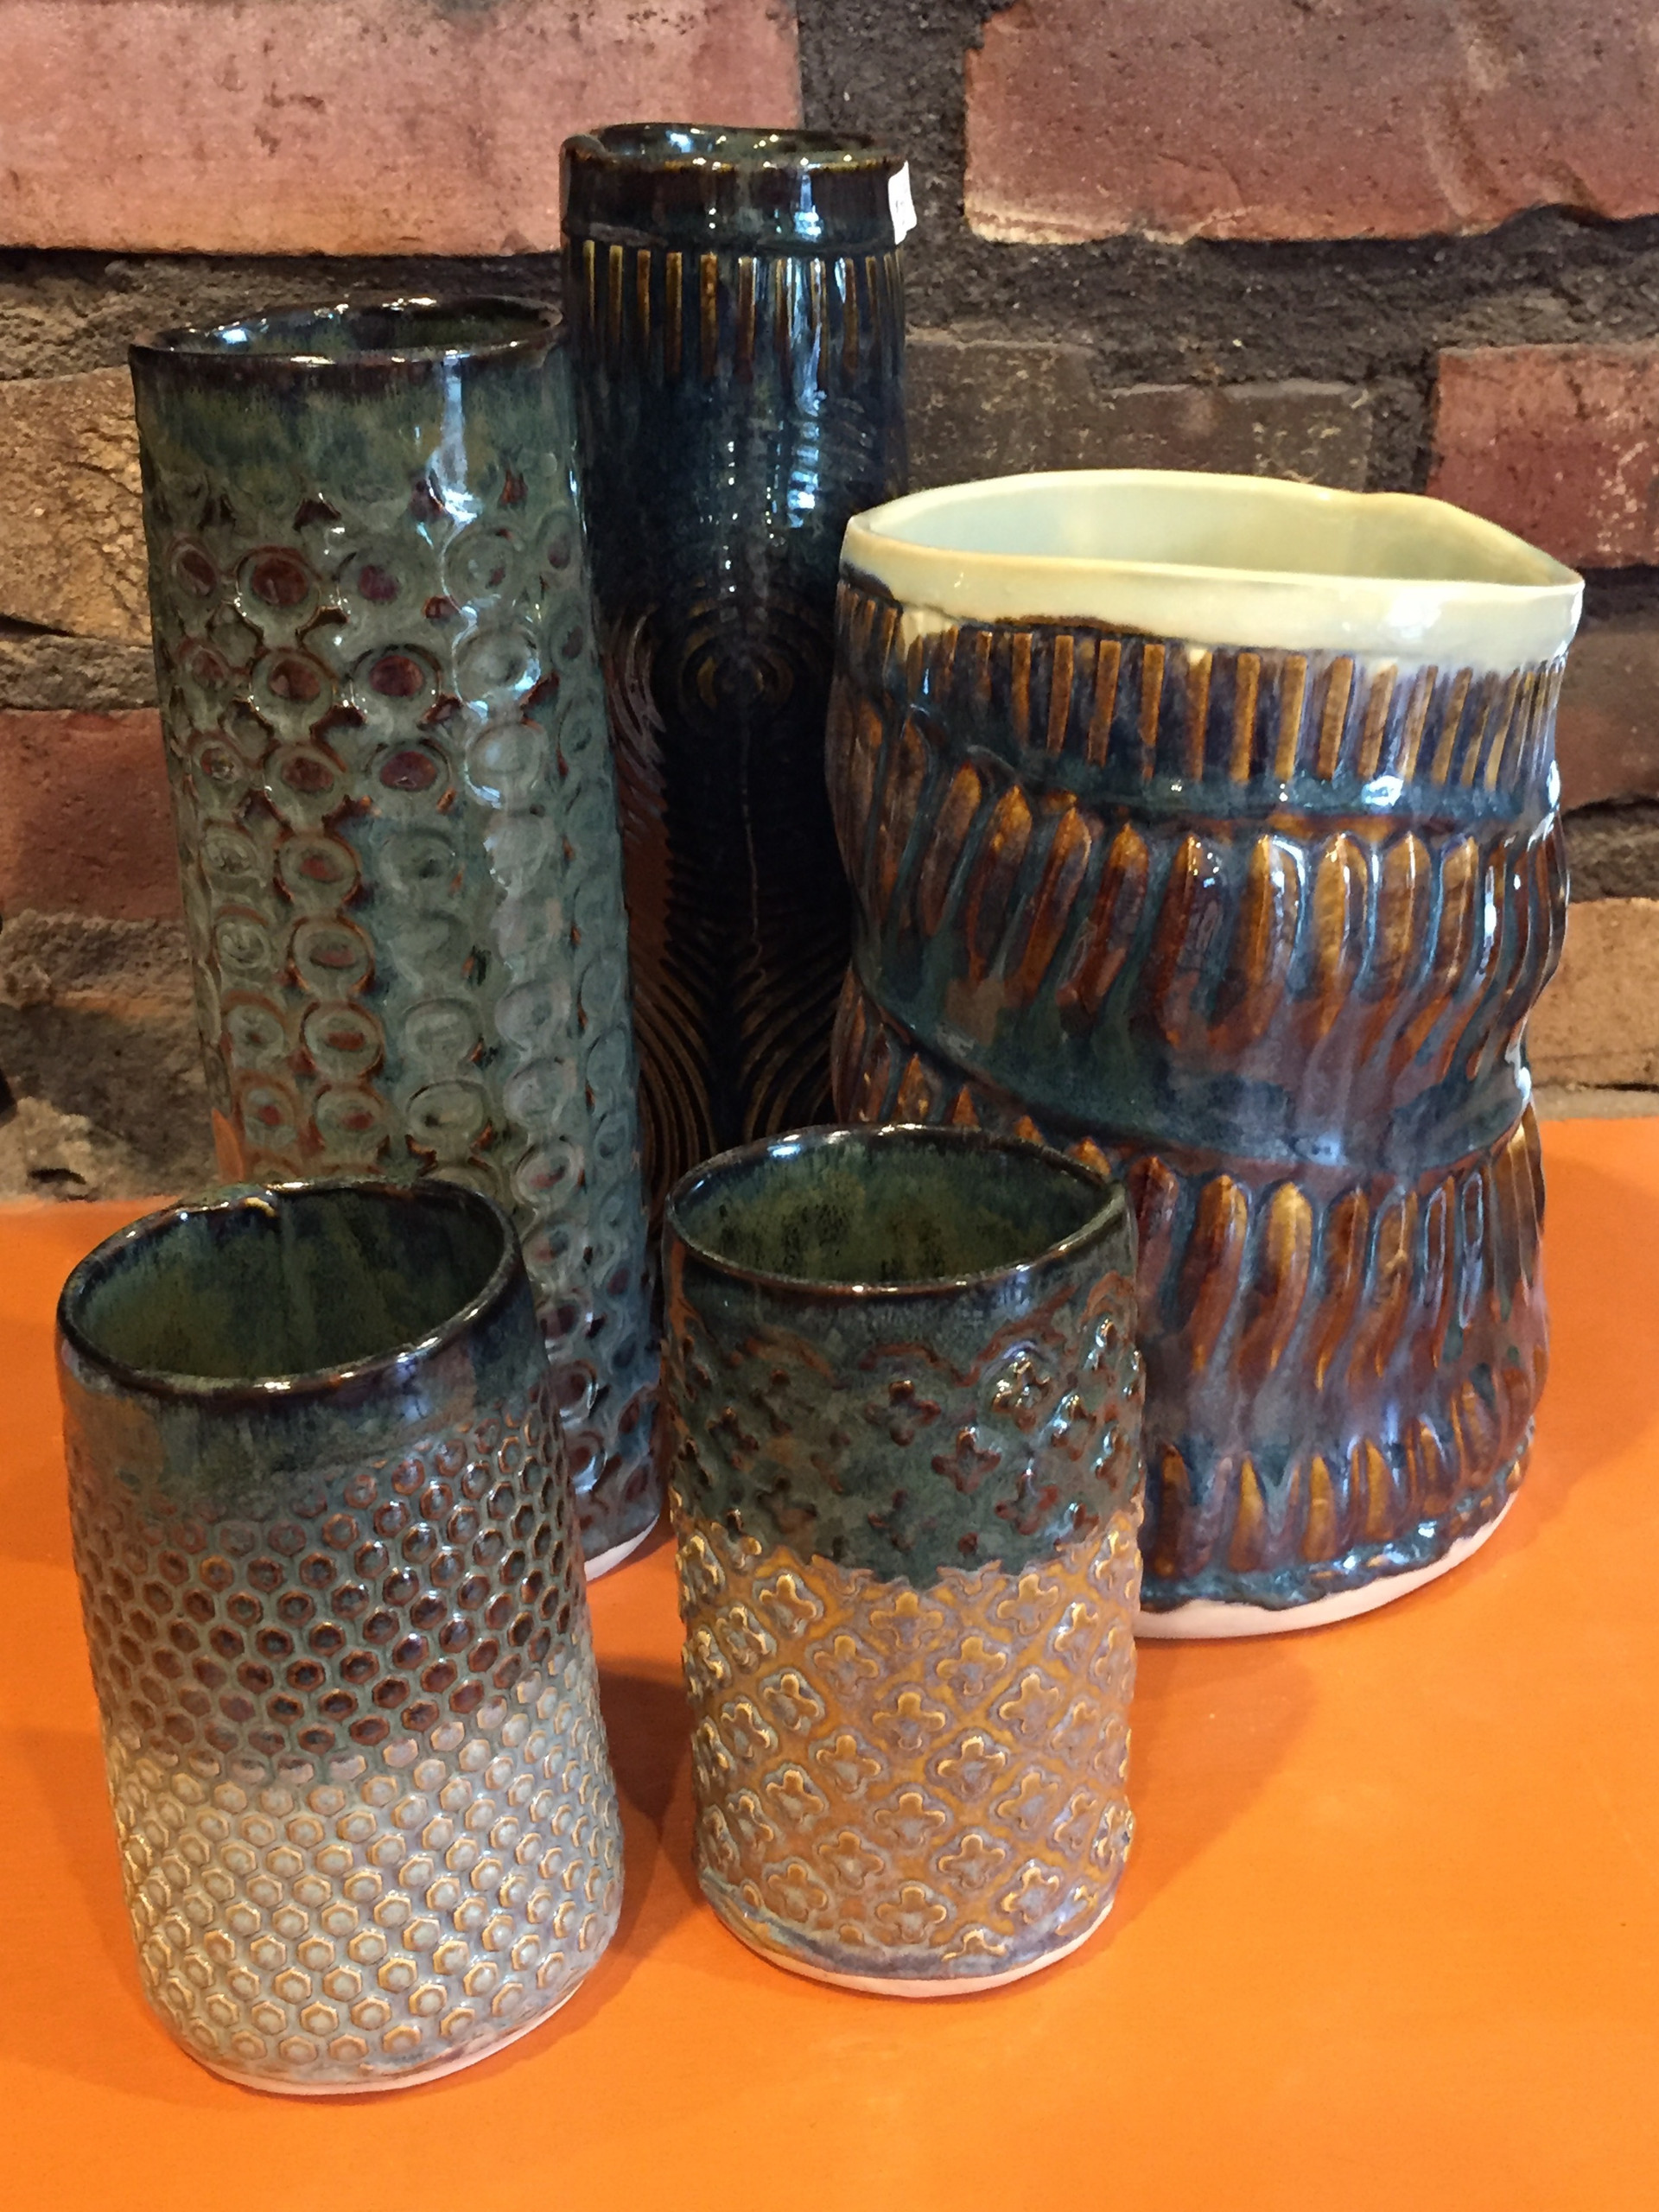 Patterned cups